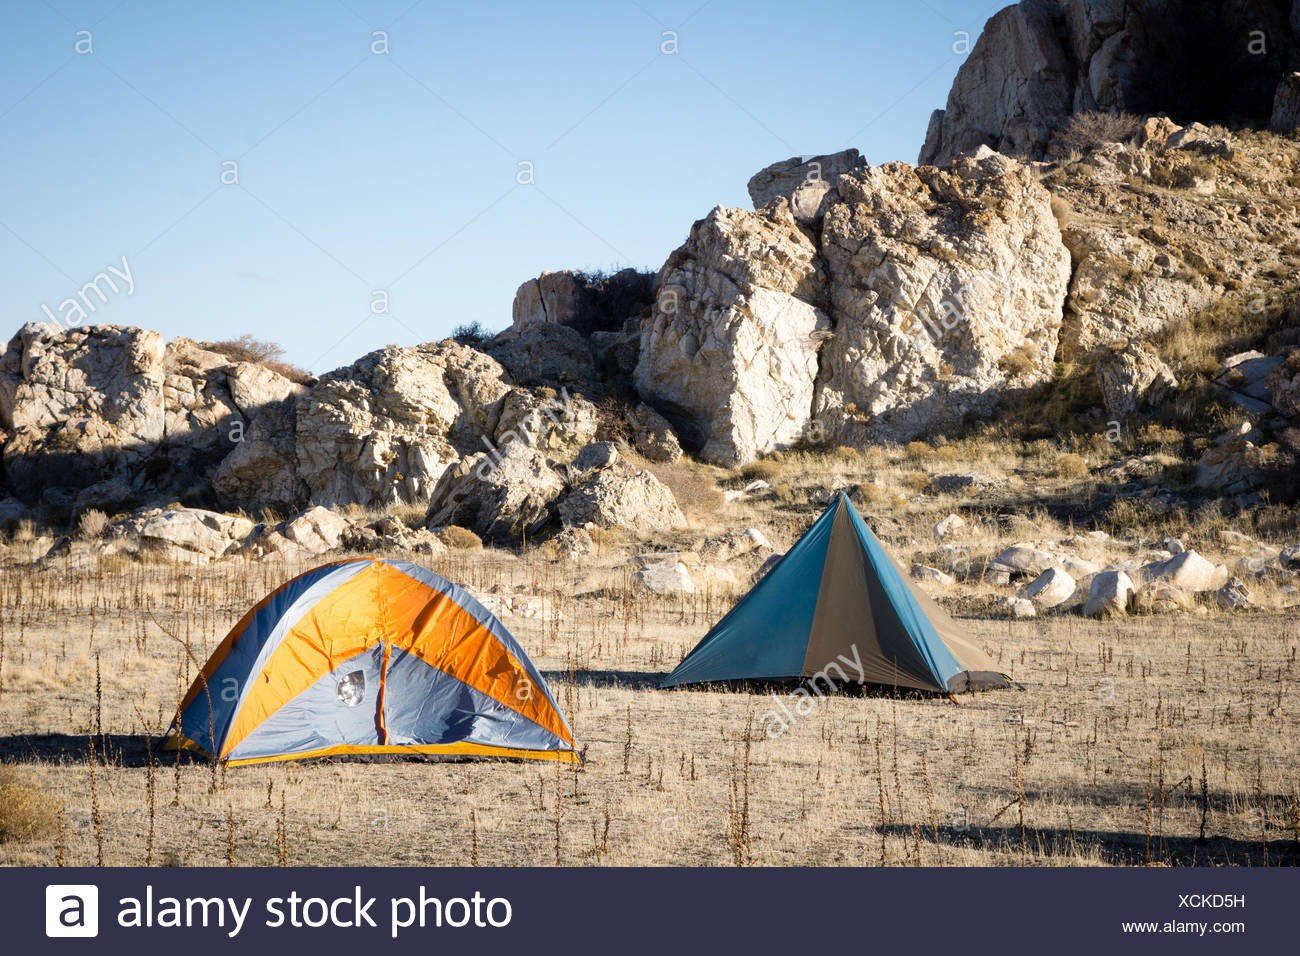 Camping Tents On Field - Stock Image